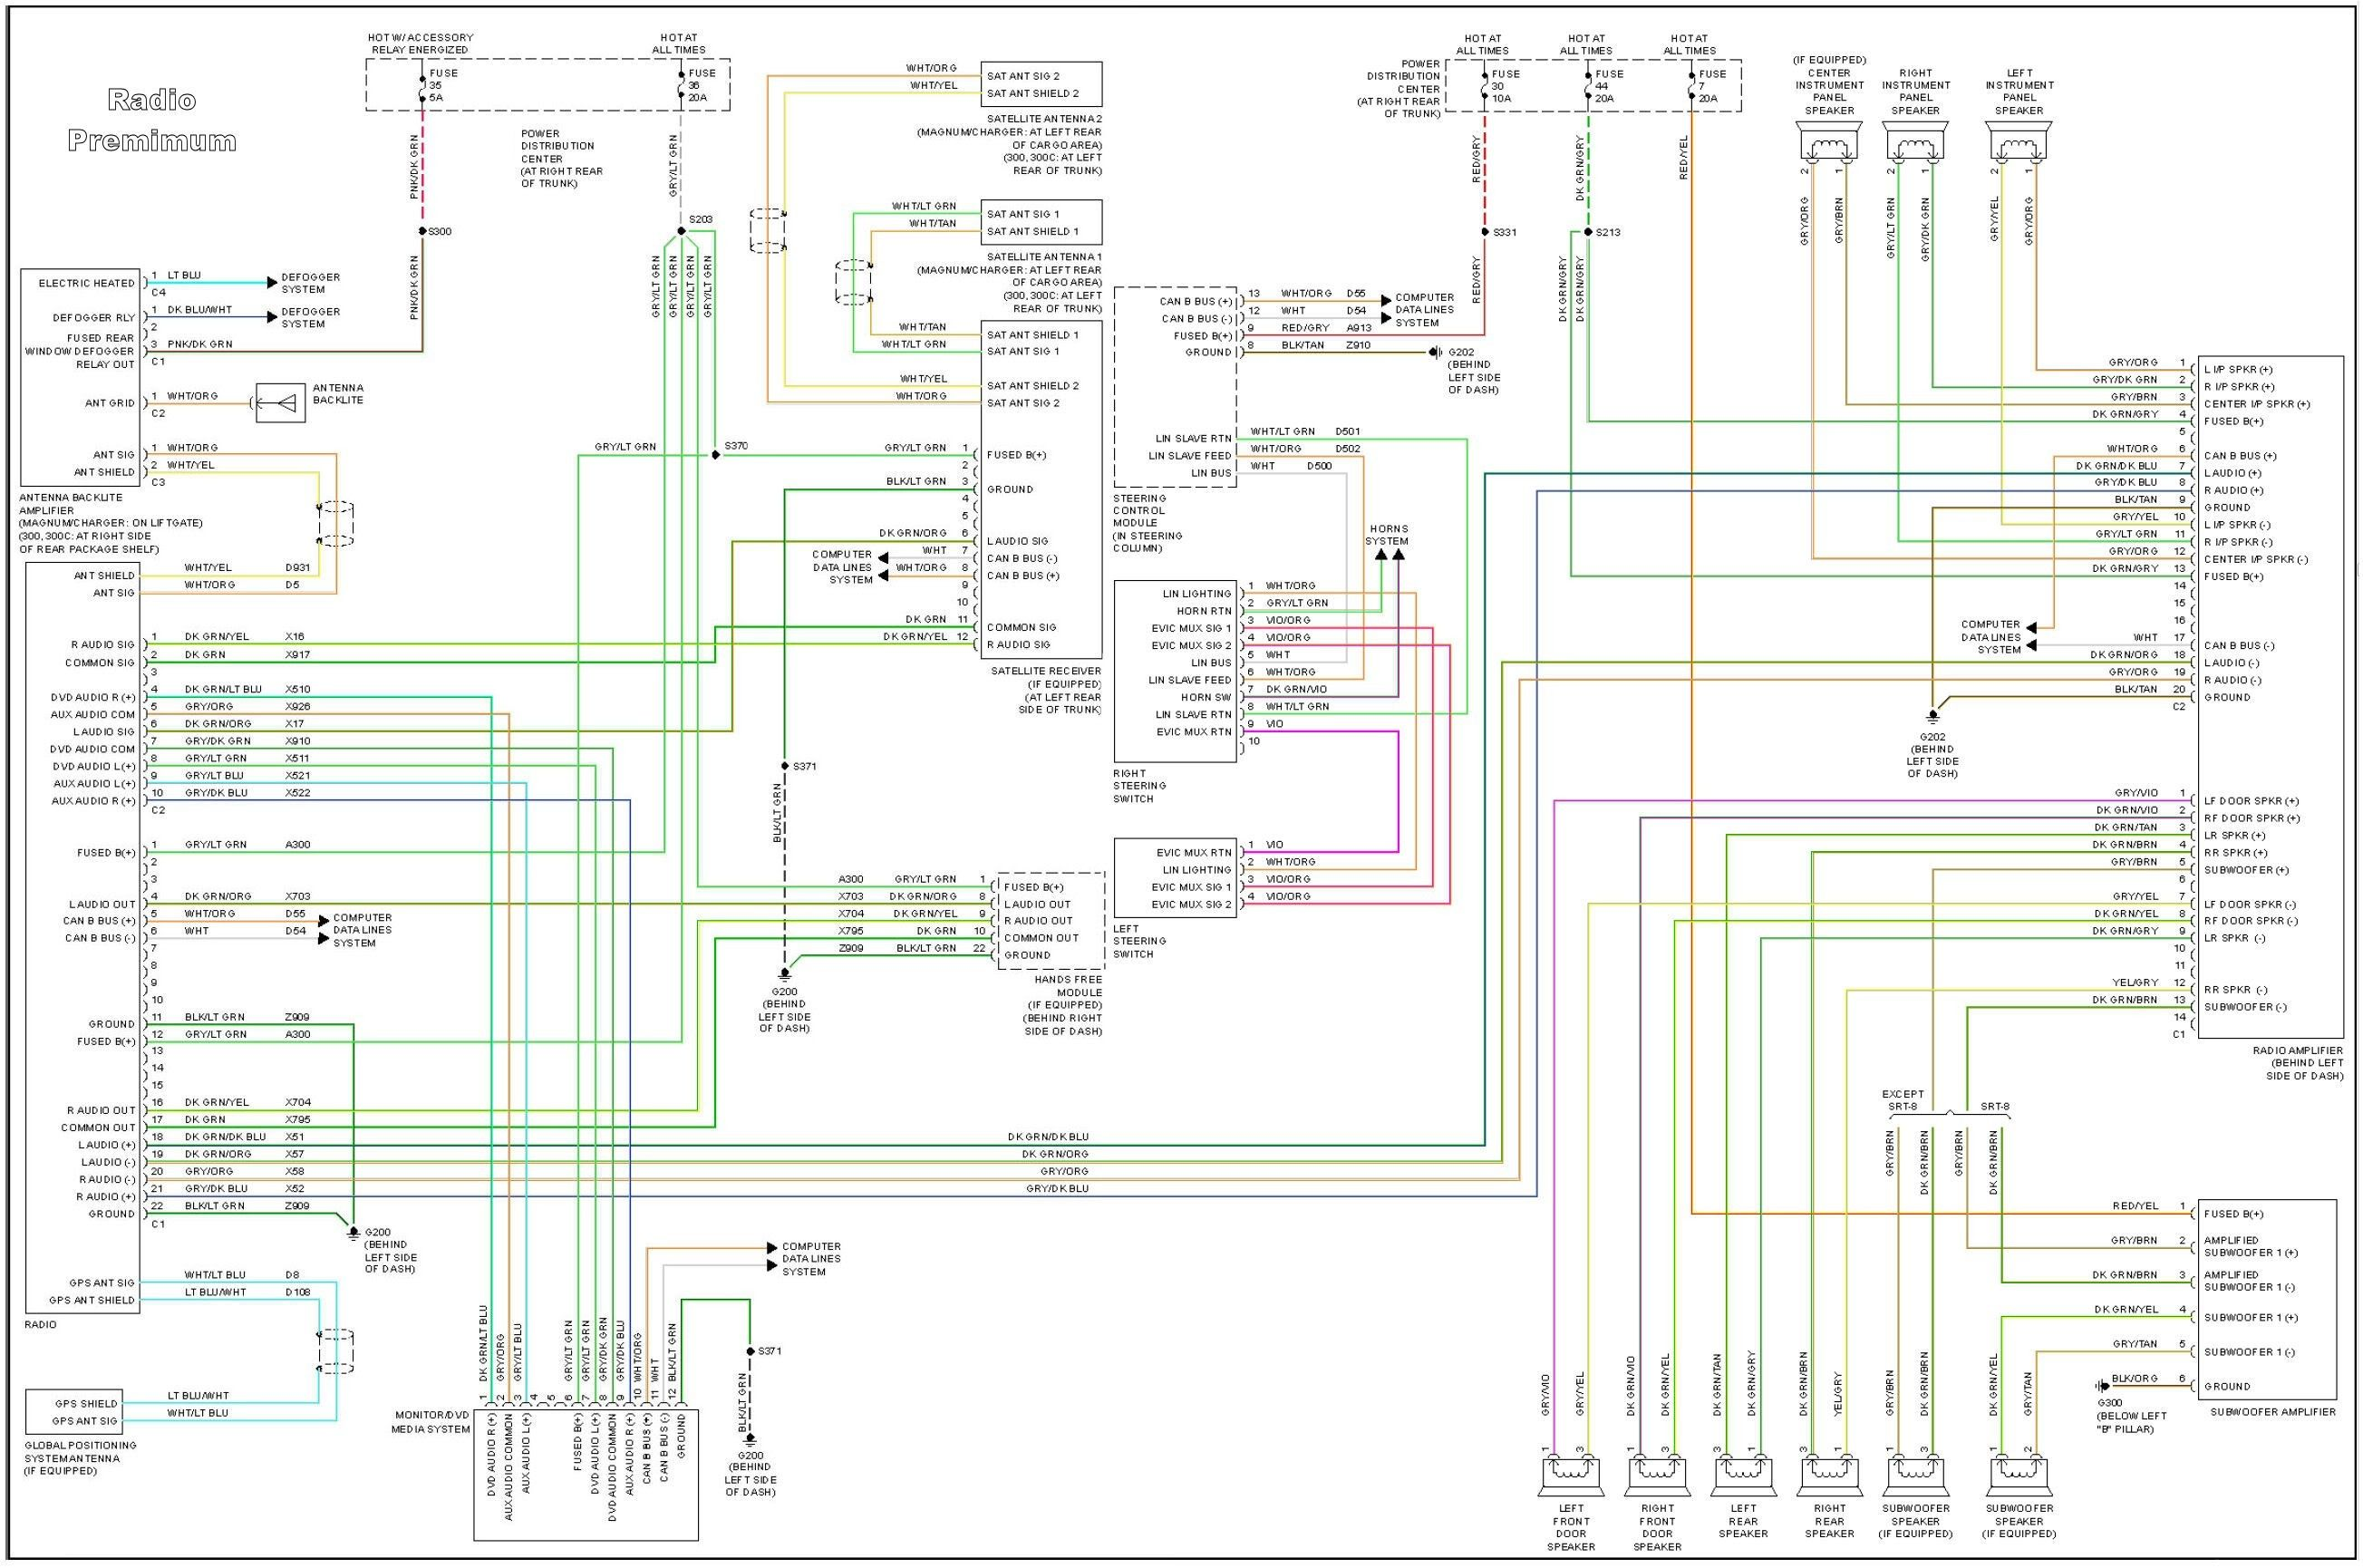 Awesome Wiring Diagram Jeep Grand Cherokee #diagrams #digramssample  #diagramimages #wiringdiagramsample #wiringdiag… | Jeep grand cherokee,  Chrysler 300, Jeep grand | 2005 Jeep Wiring Diagram |  | Pinterest